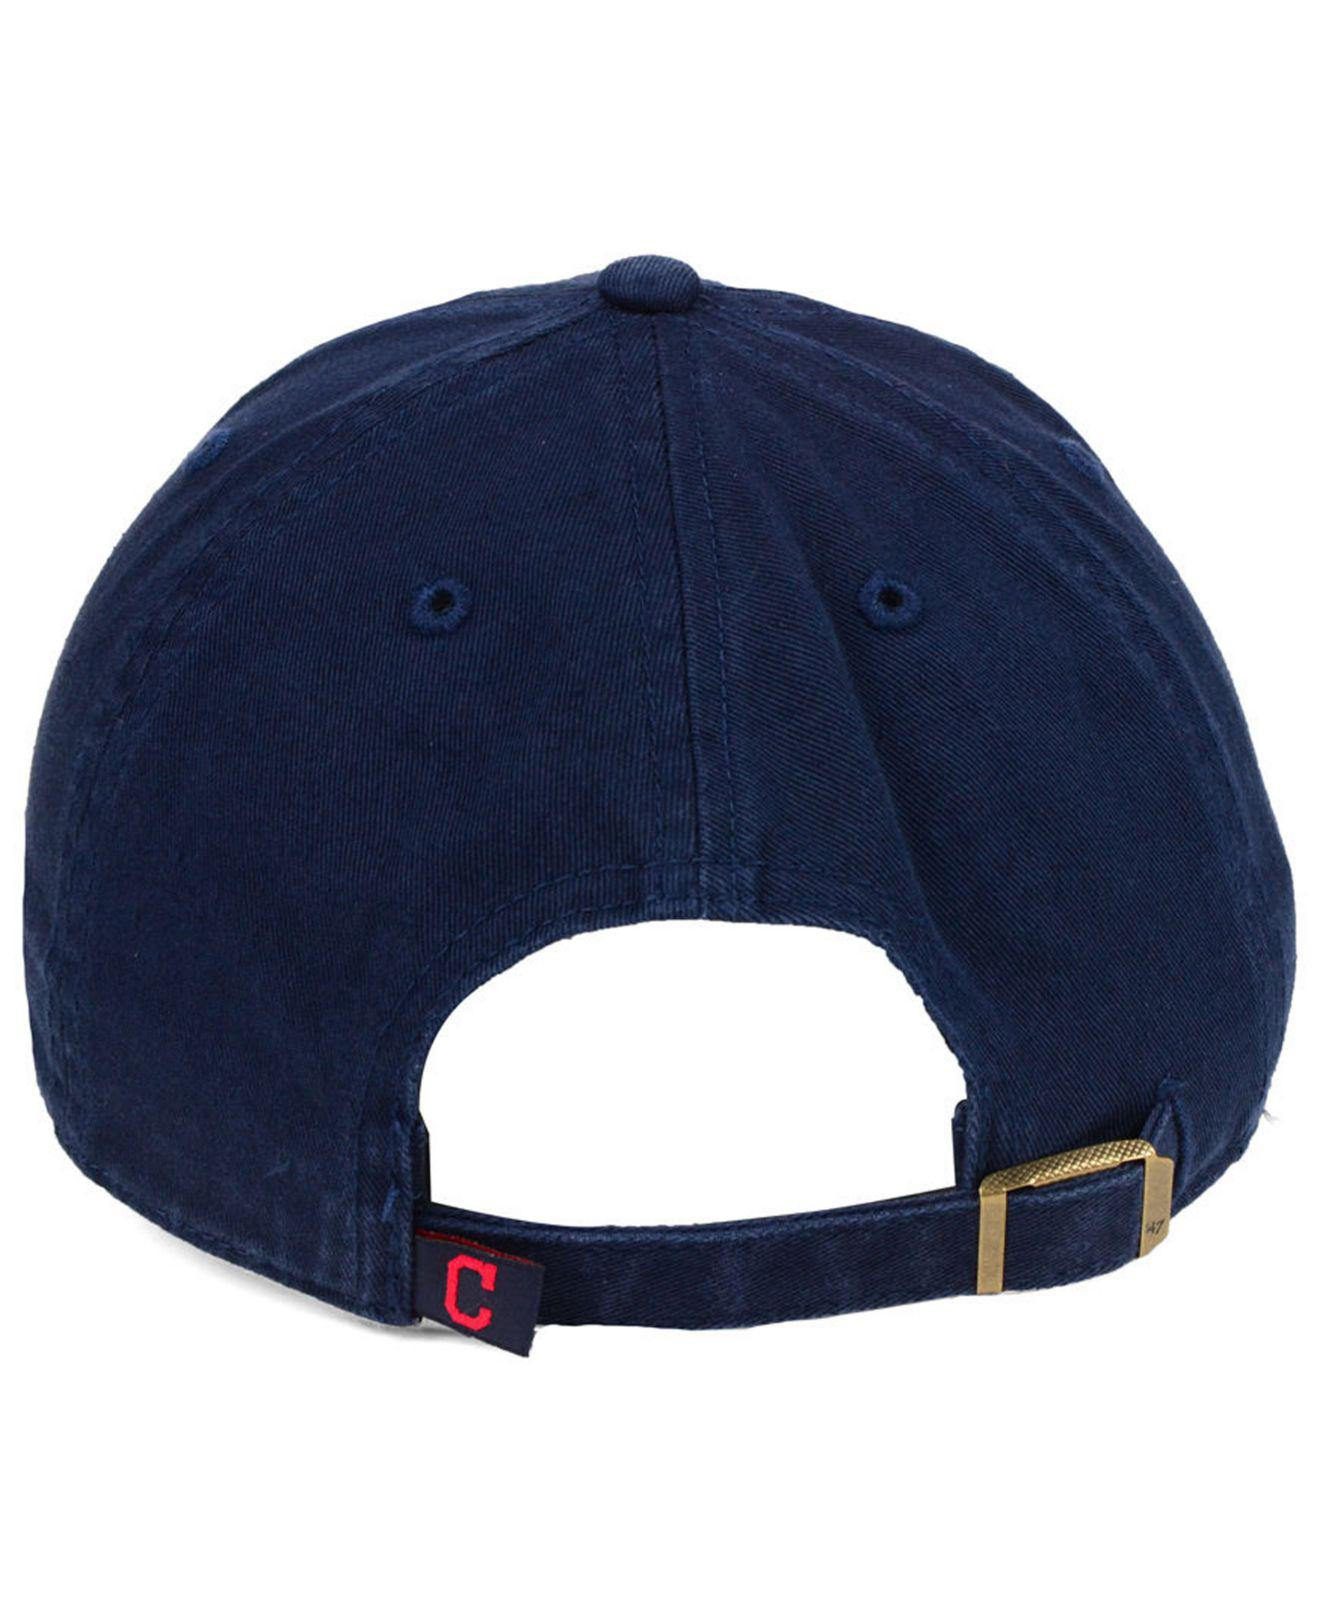 huge discount 329d1 24811 ... closeout sale lyst 47 brand cleveland indians axis clean up cap in blue  for men a593f